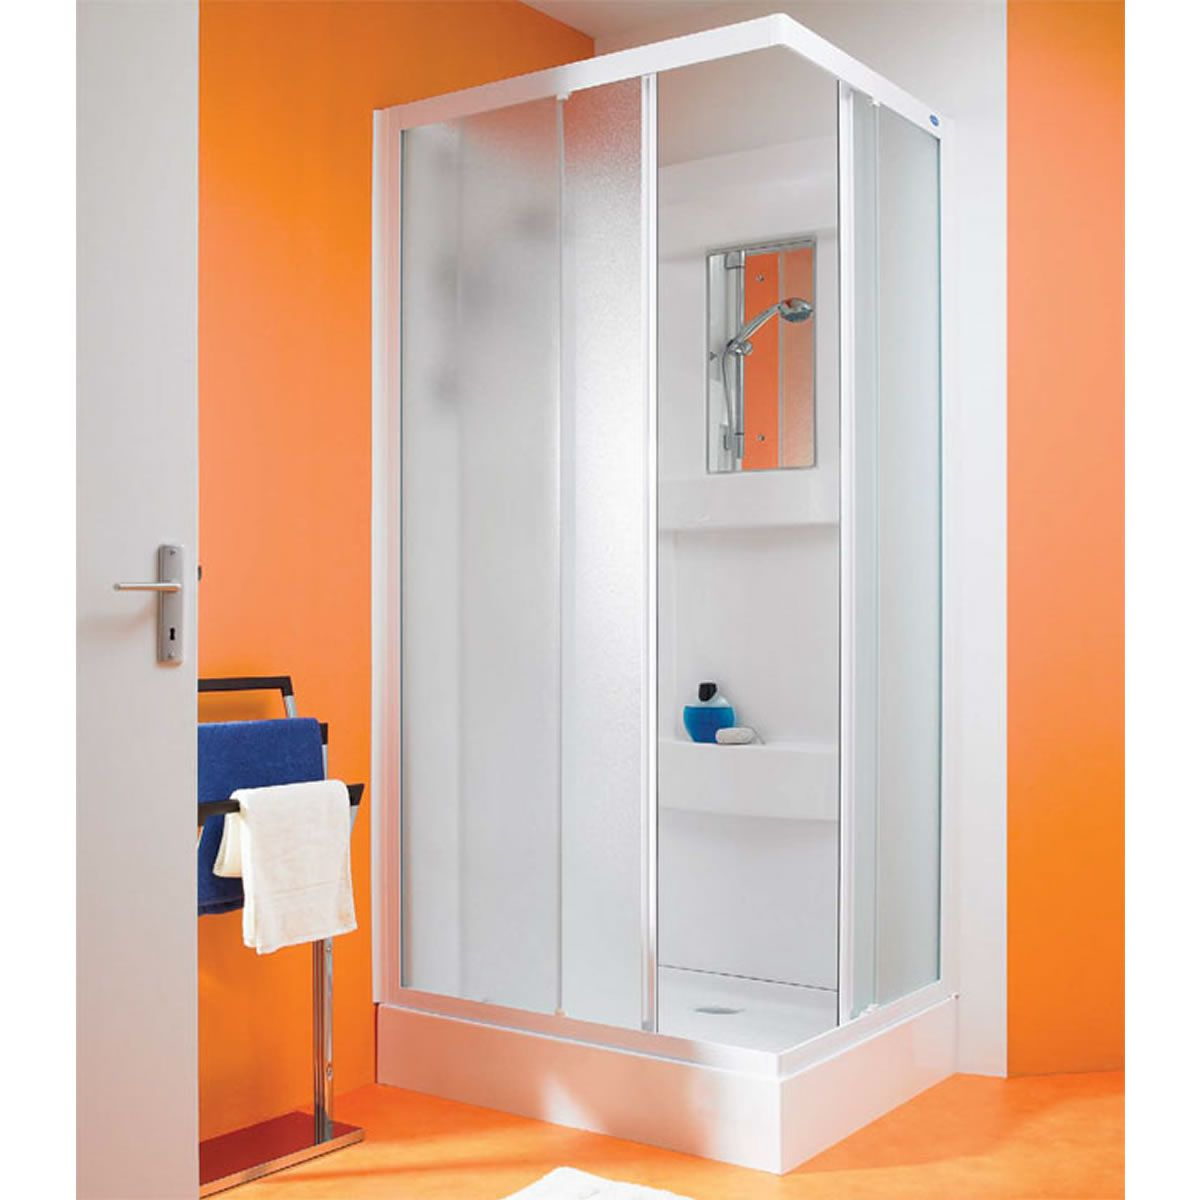 Kinedo Kineprime Shower Cubicle Ukbathrooms